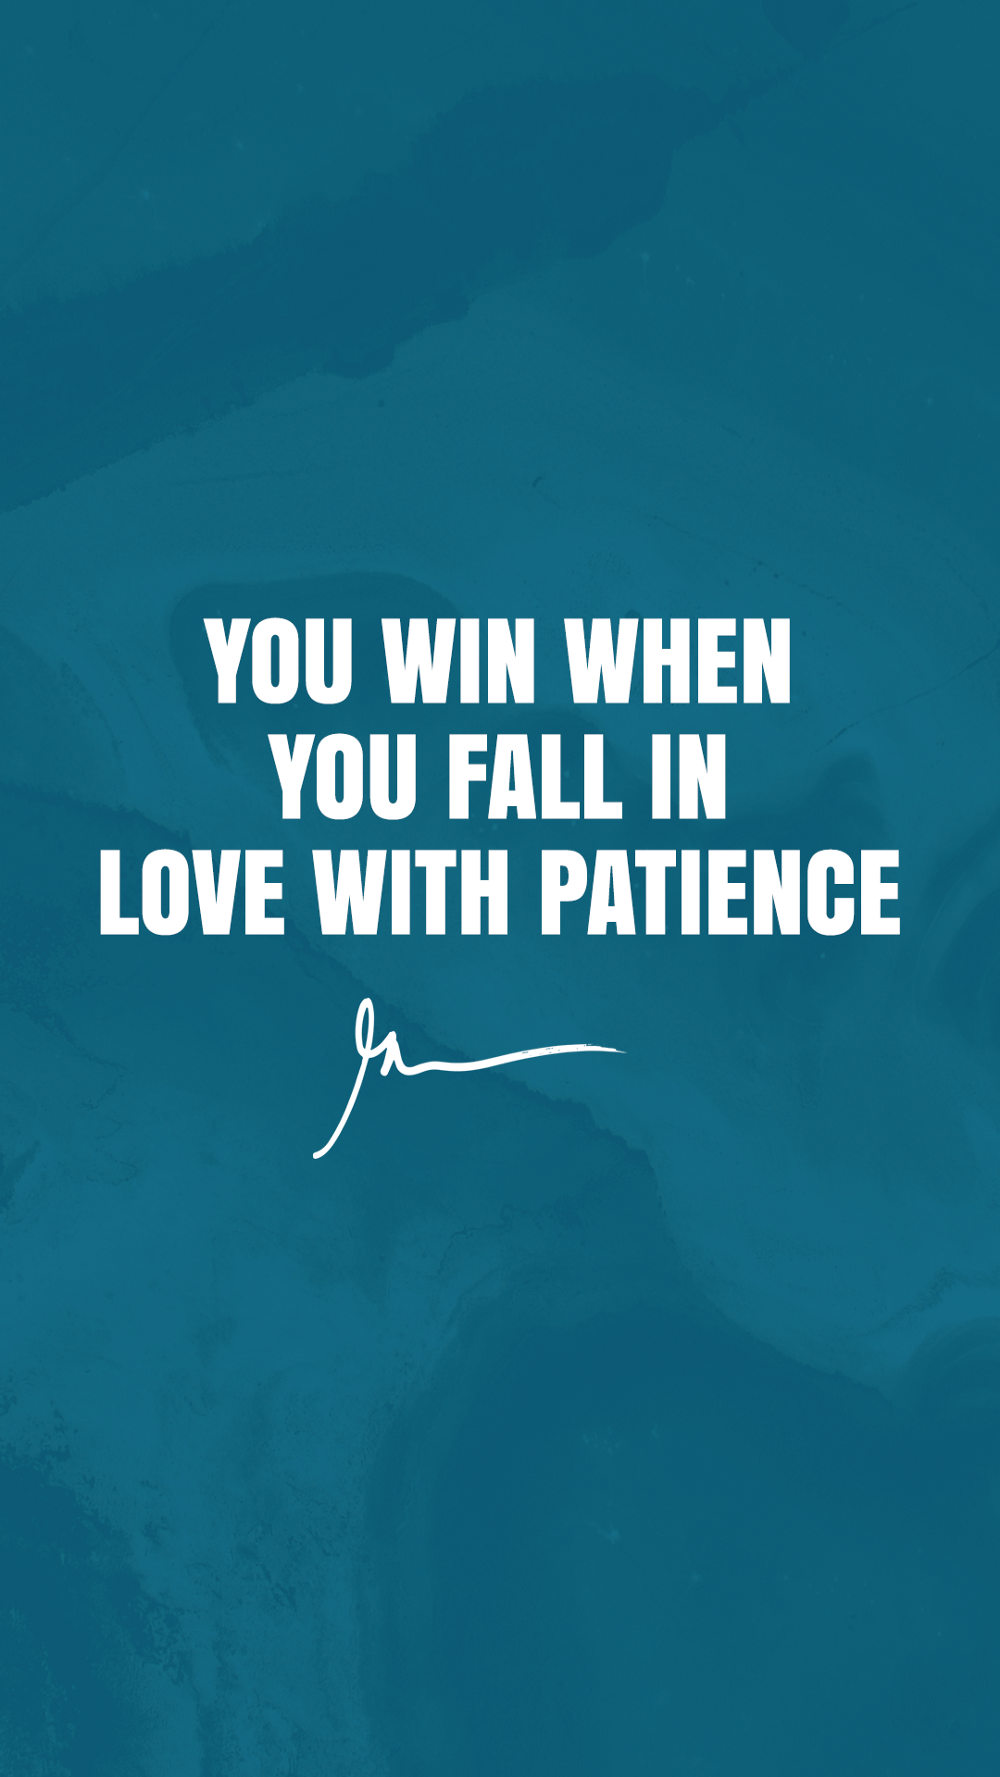 You Win When You Fall In Love With Patience